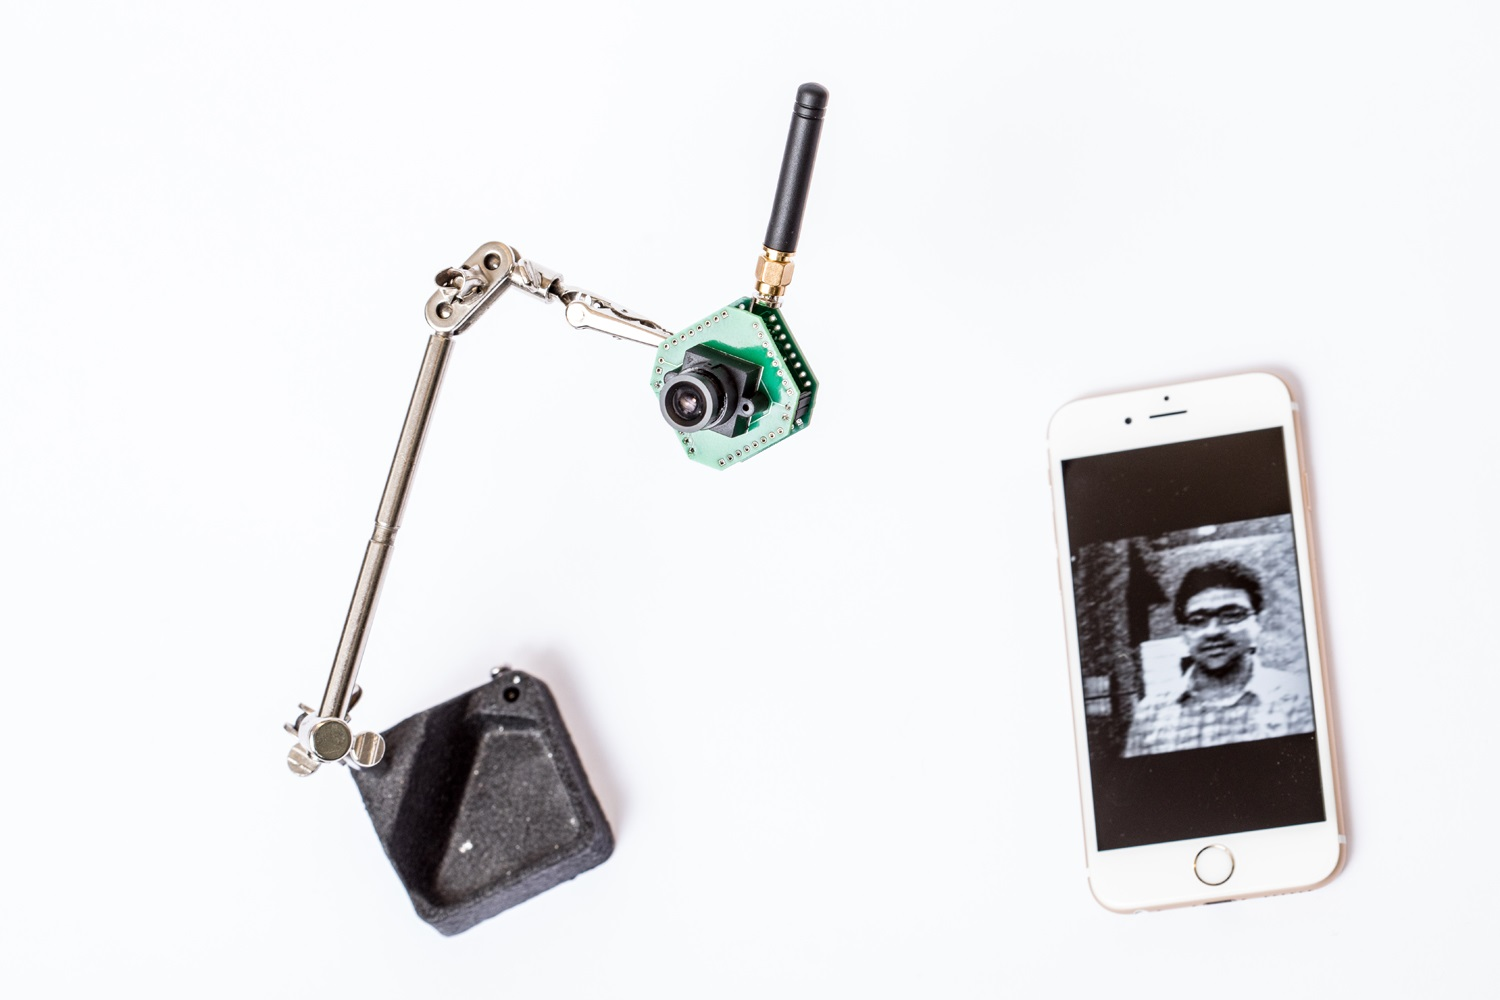 The UW team also created a low-resolution, low-power security camera, shown here on a stand